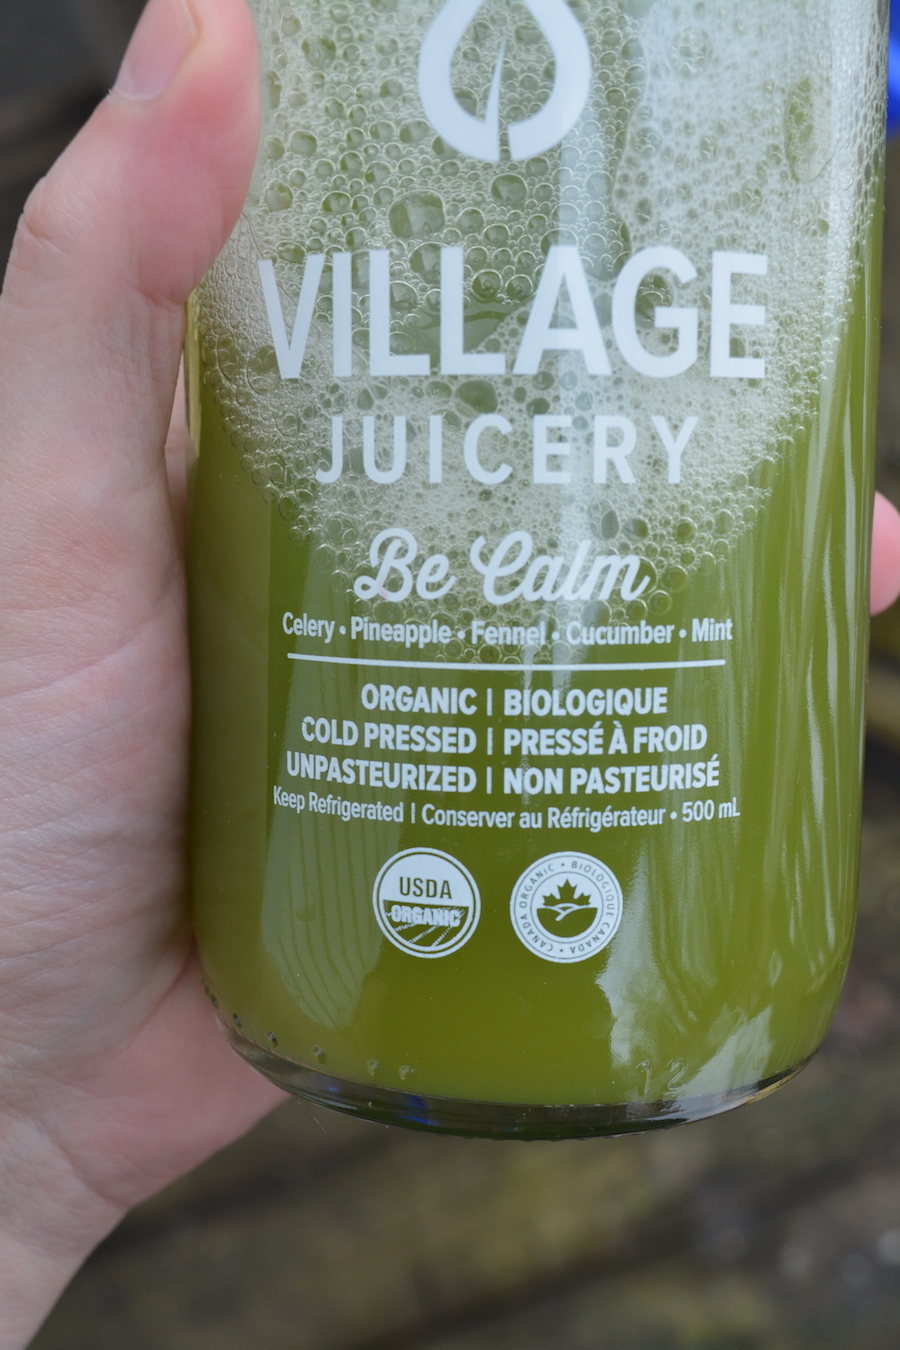 Be Calm juice by Village Juicery